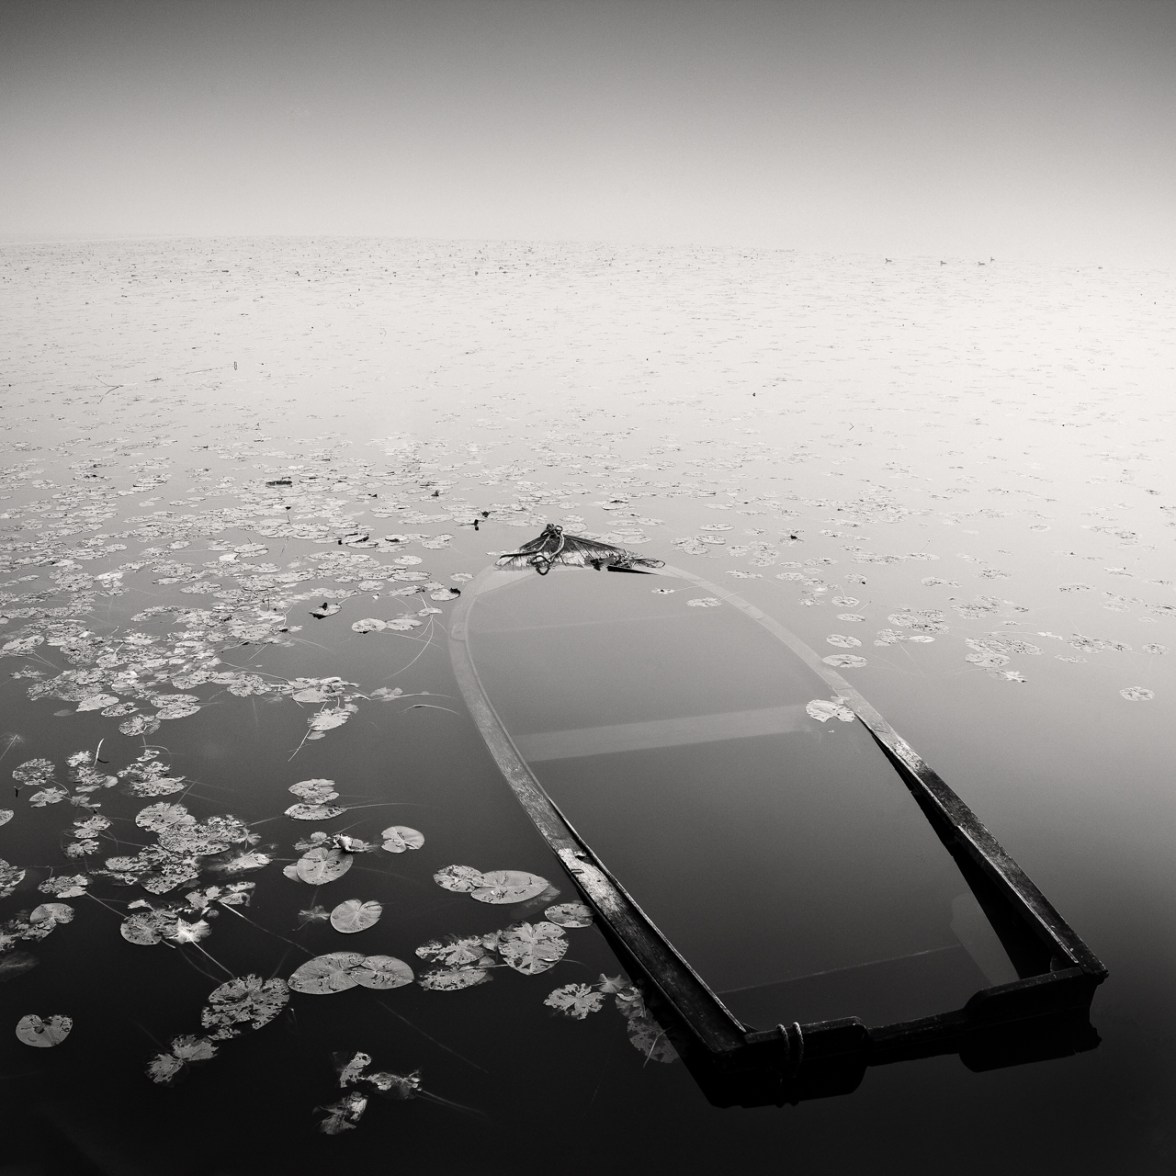 Submerged,2013, © Frang Dushaj